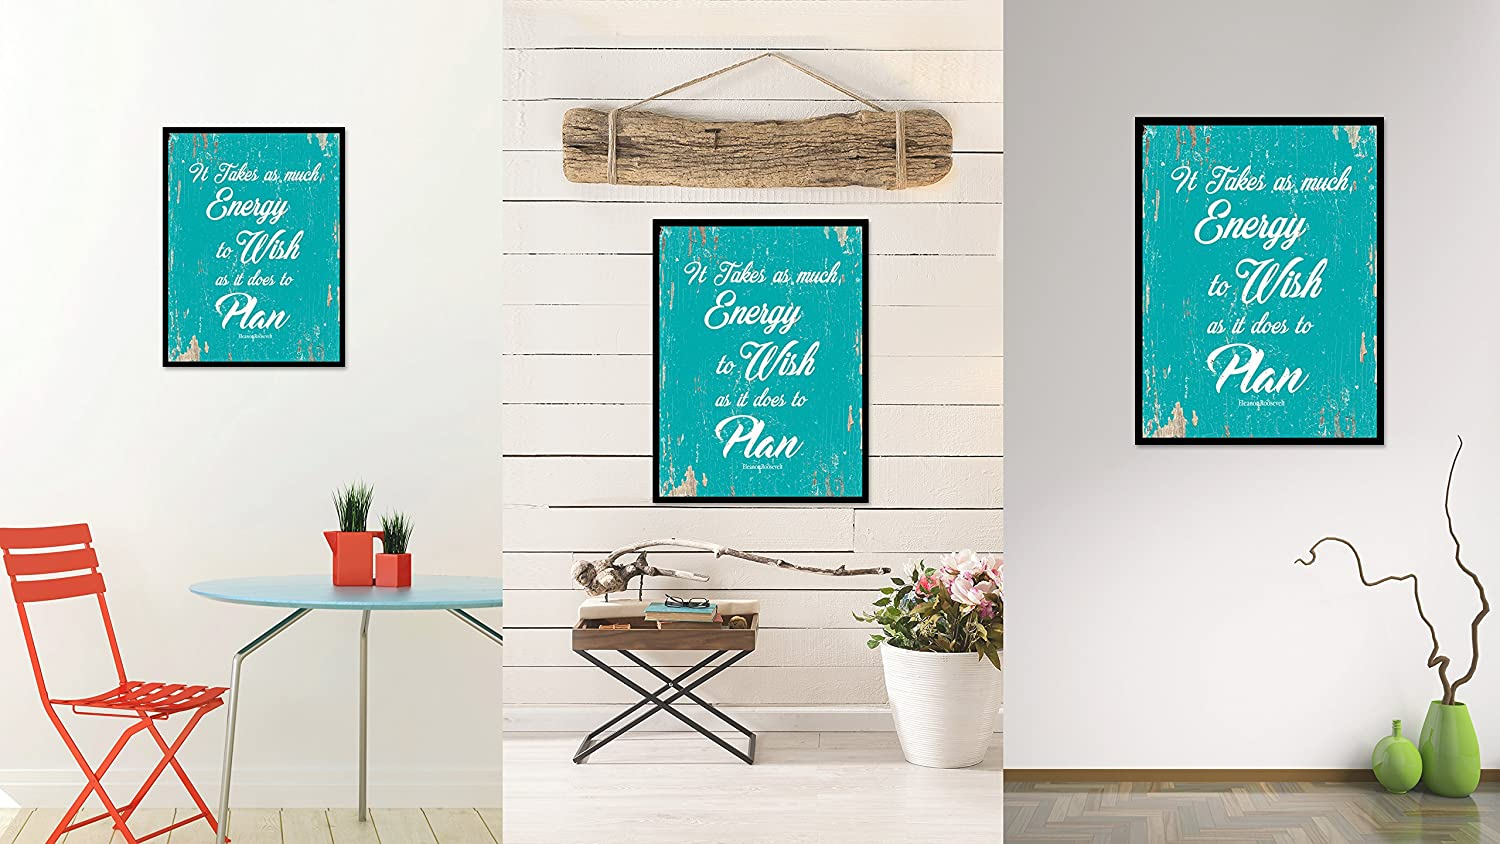 SpotColorArt It Takes As Much Energy to Wish As It Does to Plan Handcrafted Canvas Print